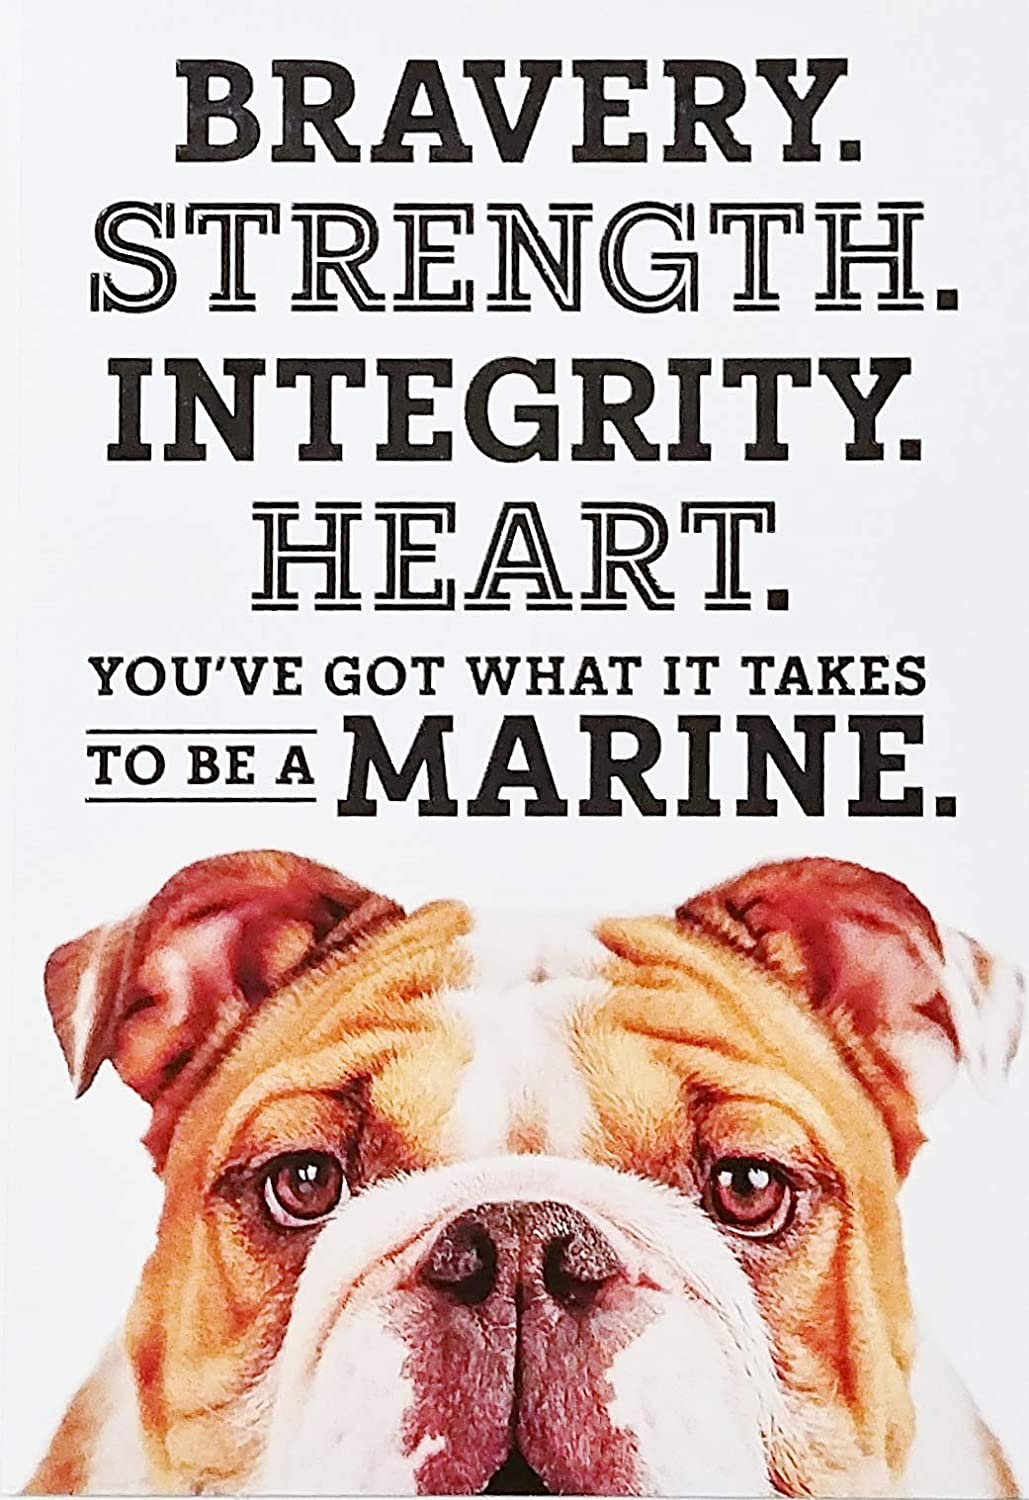 Amazon Com Bravery Strength Integrity Heart You Ve Got What It Takes To Be A Marine Happy Veterans Day Greeting Card Office Products